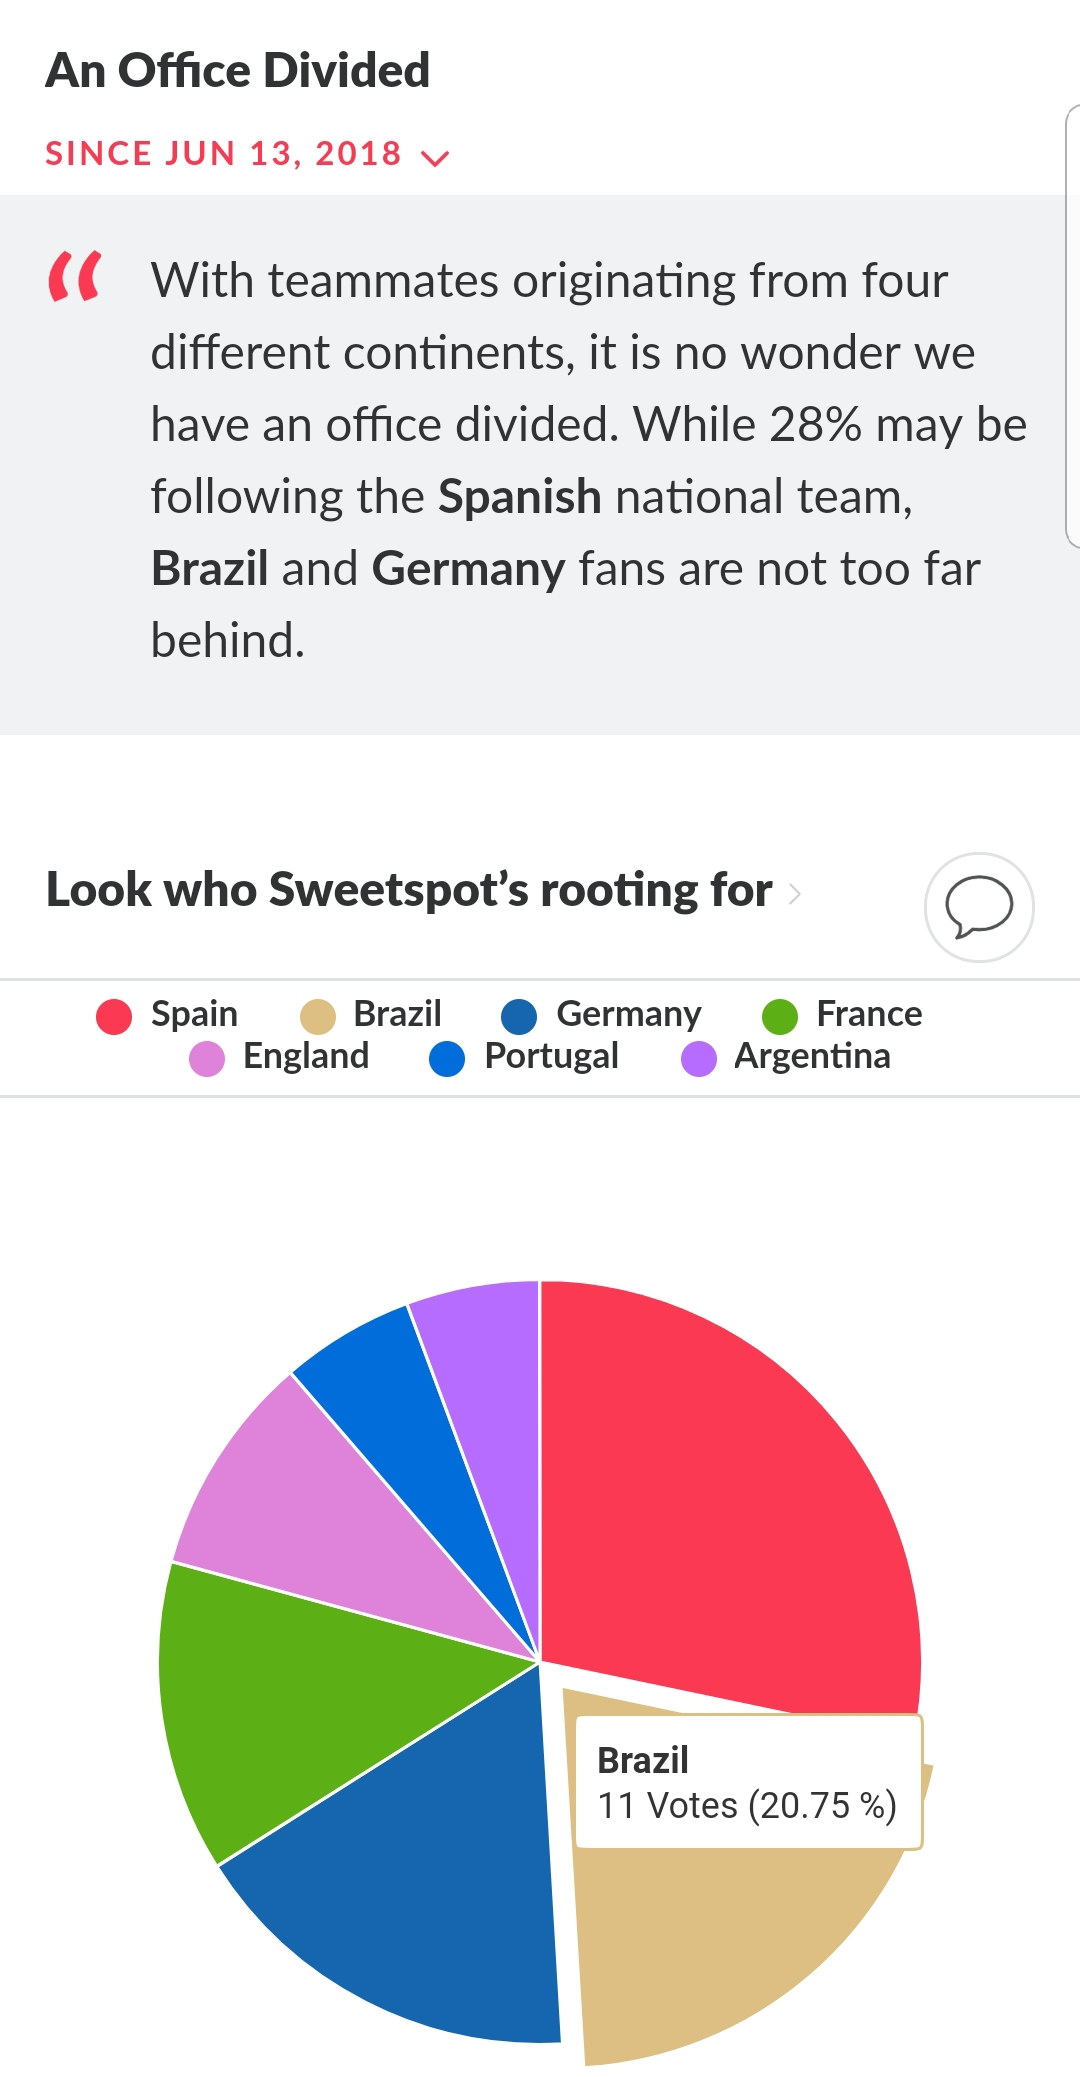 How to navigate Sweetspot's free World Cup Dashboard - Sweetspot